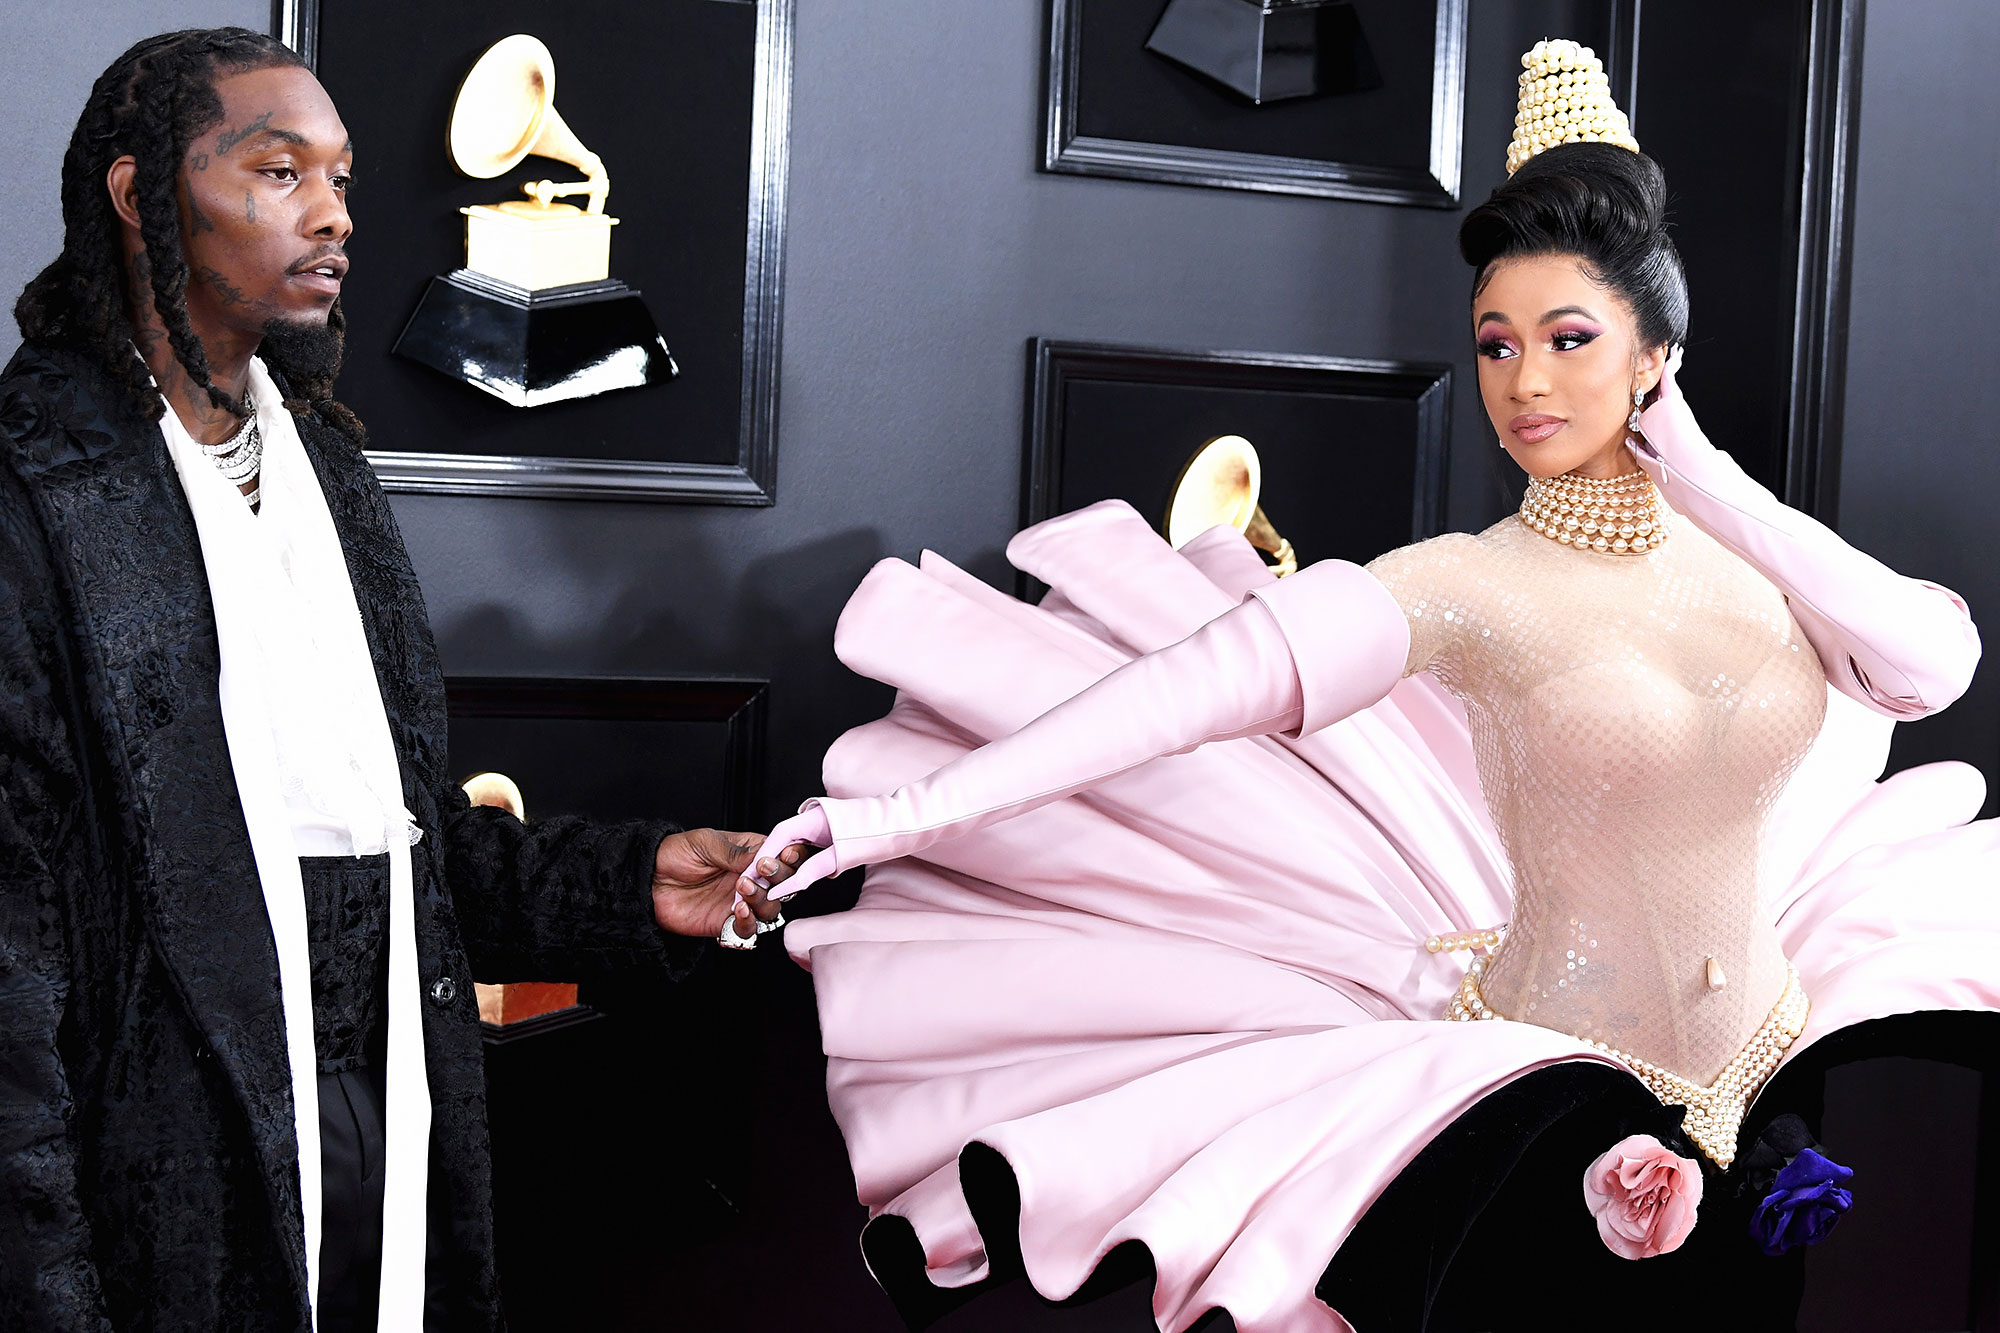 Cardi B Offset Grammys 2019 - After their breakup, Offset made a public apology to his estranged wife while she was mid-performance, presenting her with flowers.